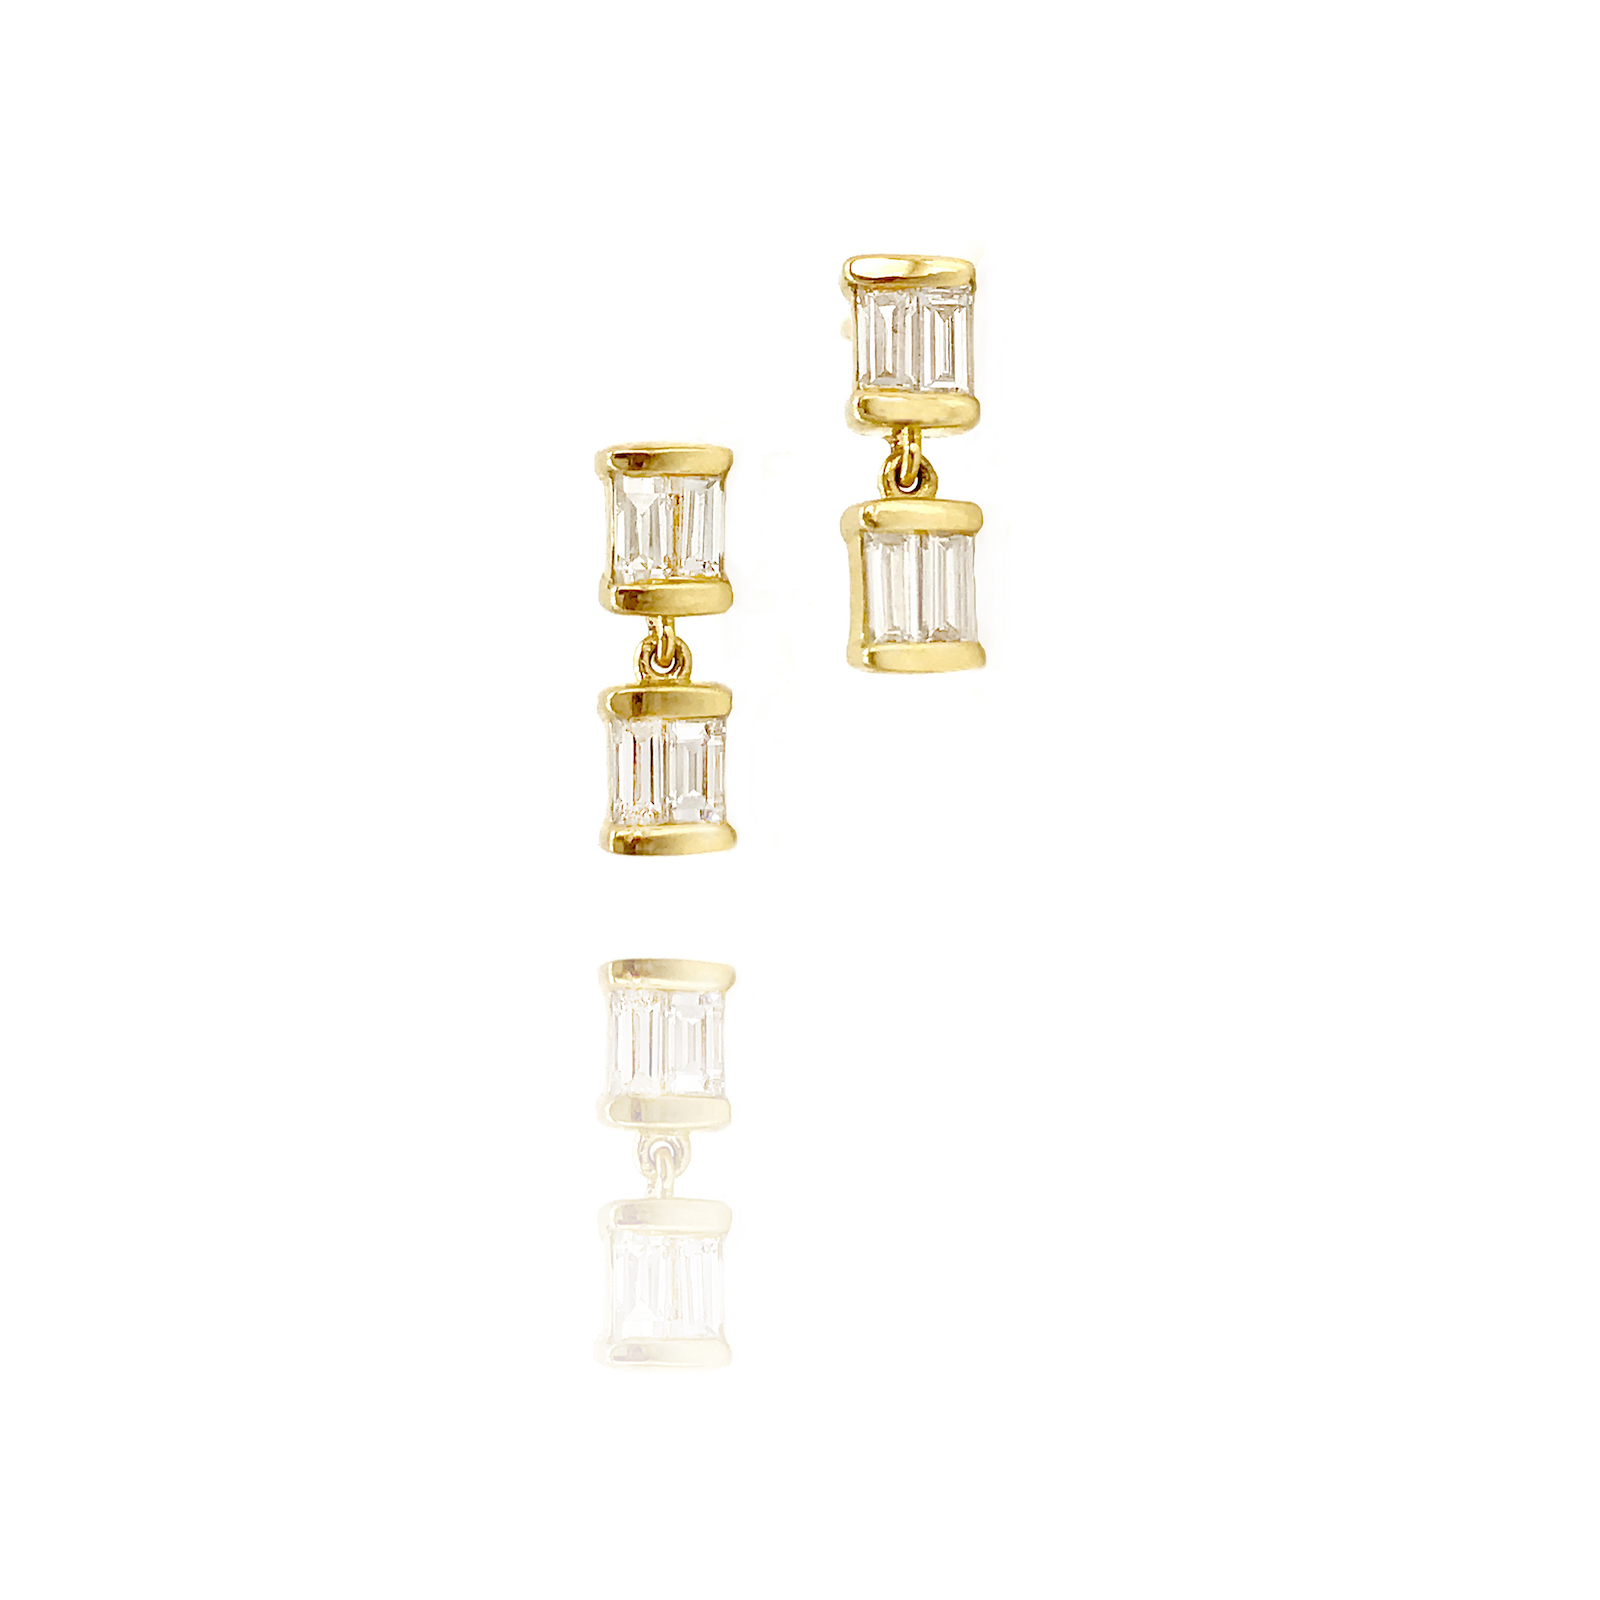 18k Gold Double Baguette Diamond Dangle Stud Earrings From Tulle Collection by Jewelyrie